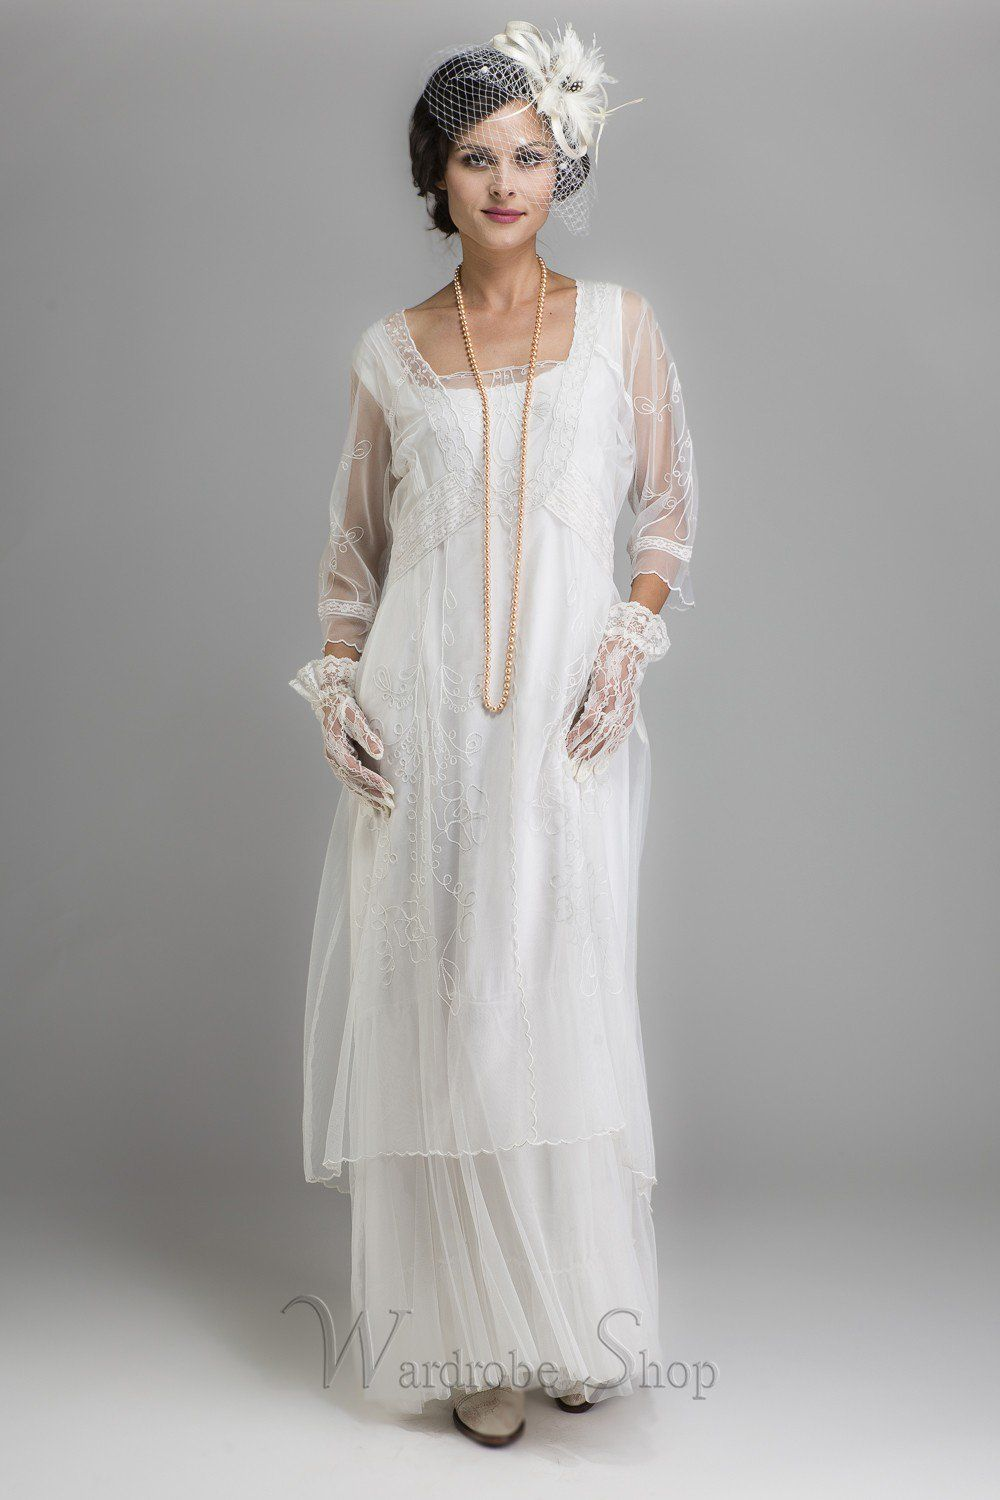 Edwardian Style Dresses Day Dresses Tea Gowns In 2020 Art Deco